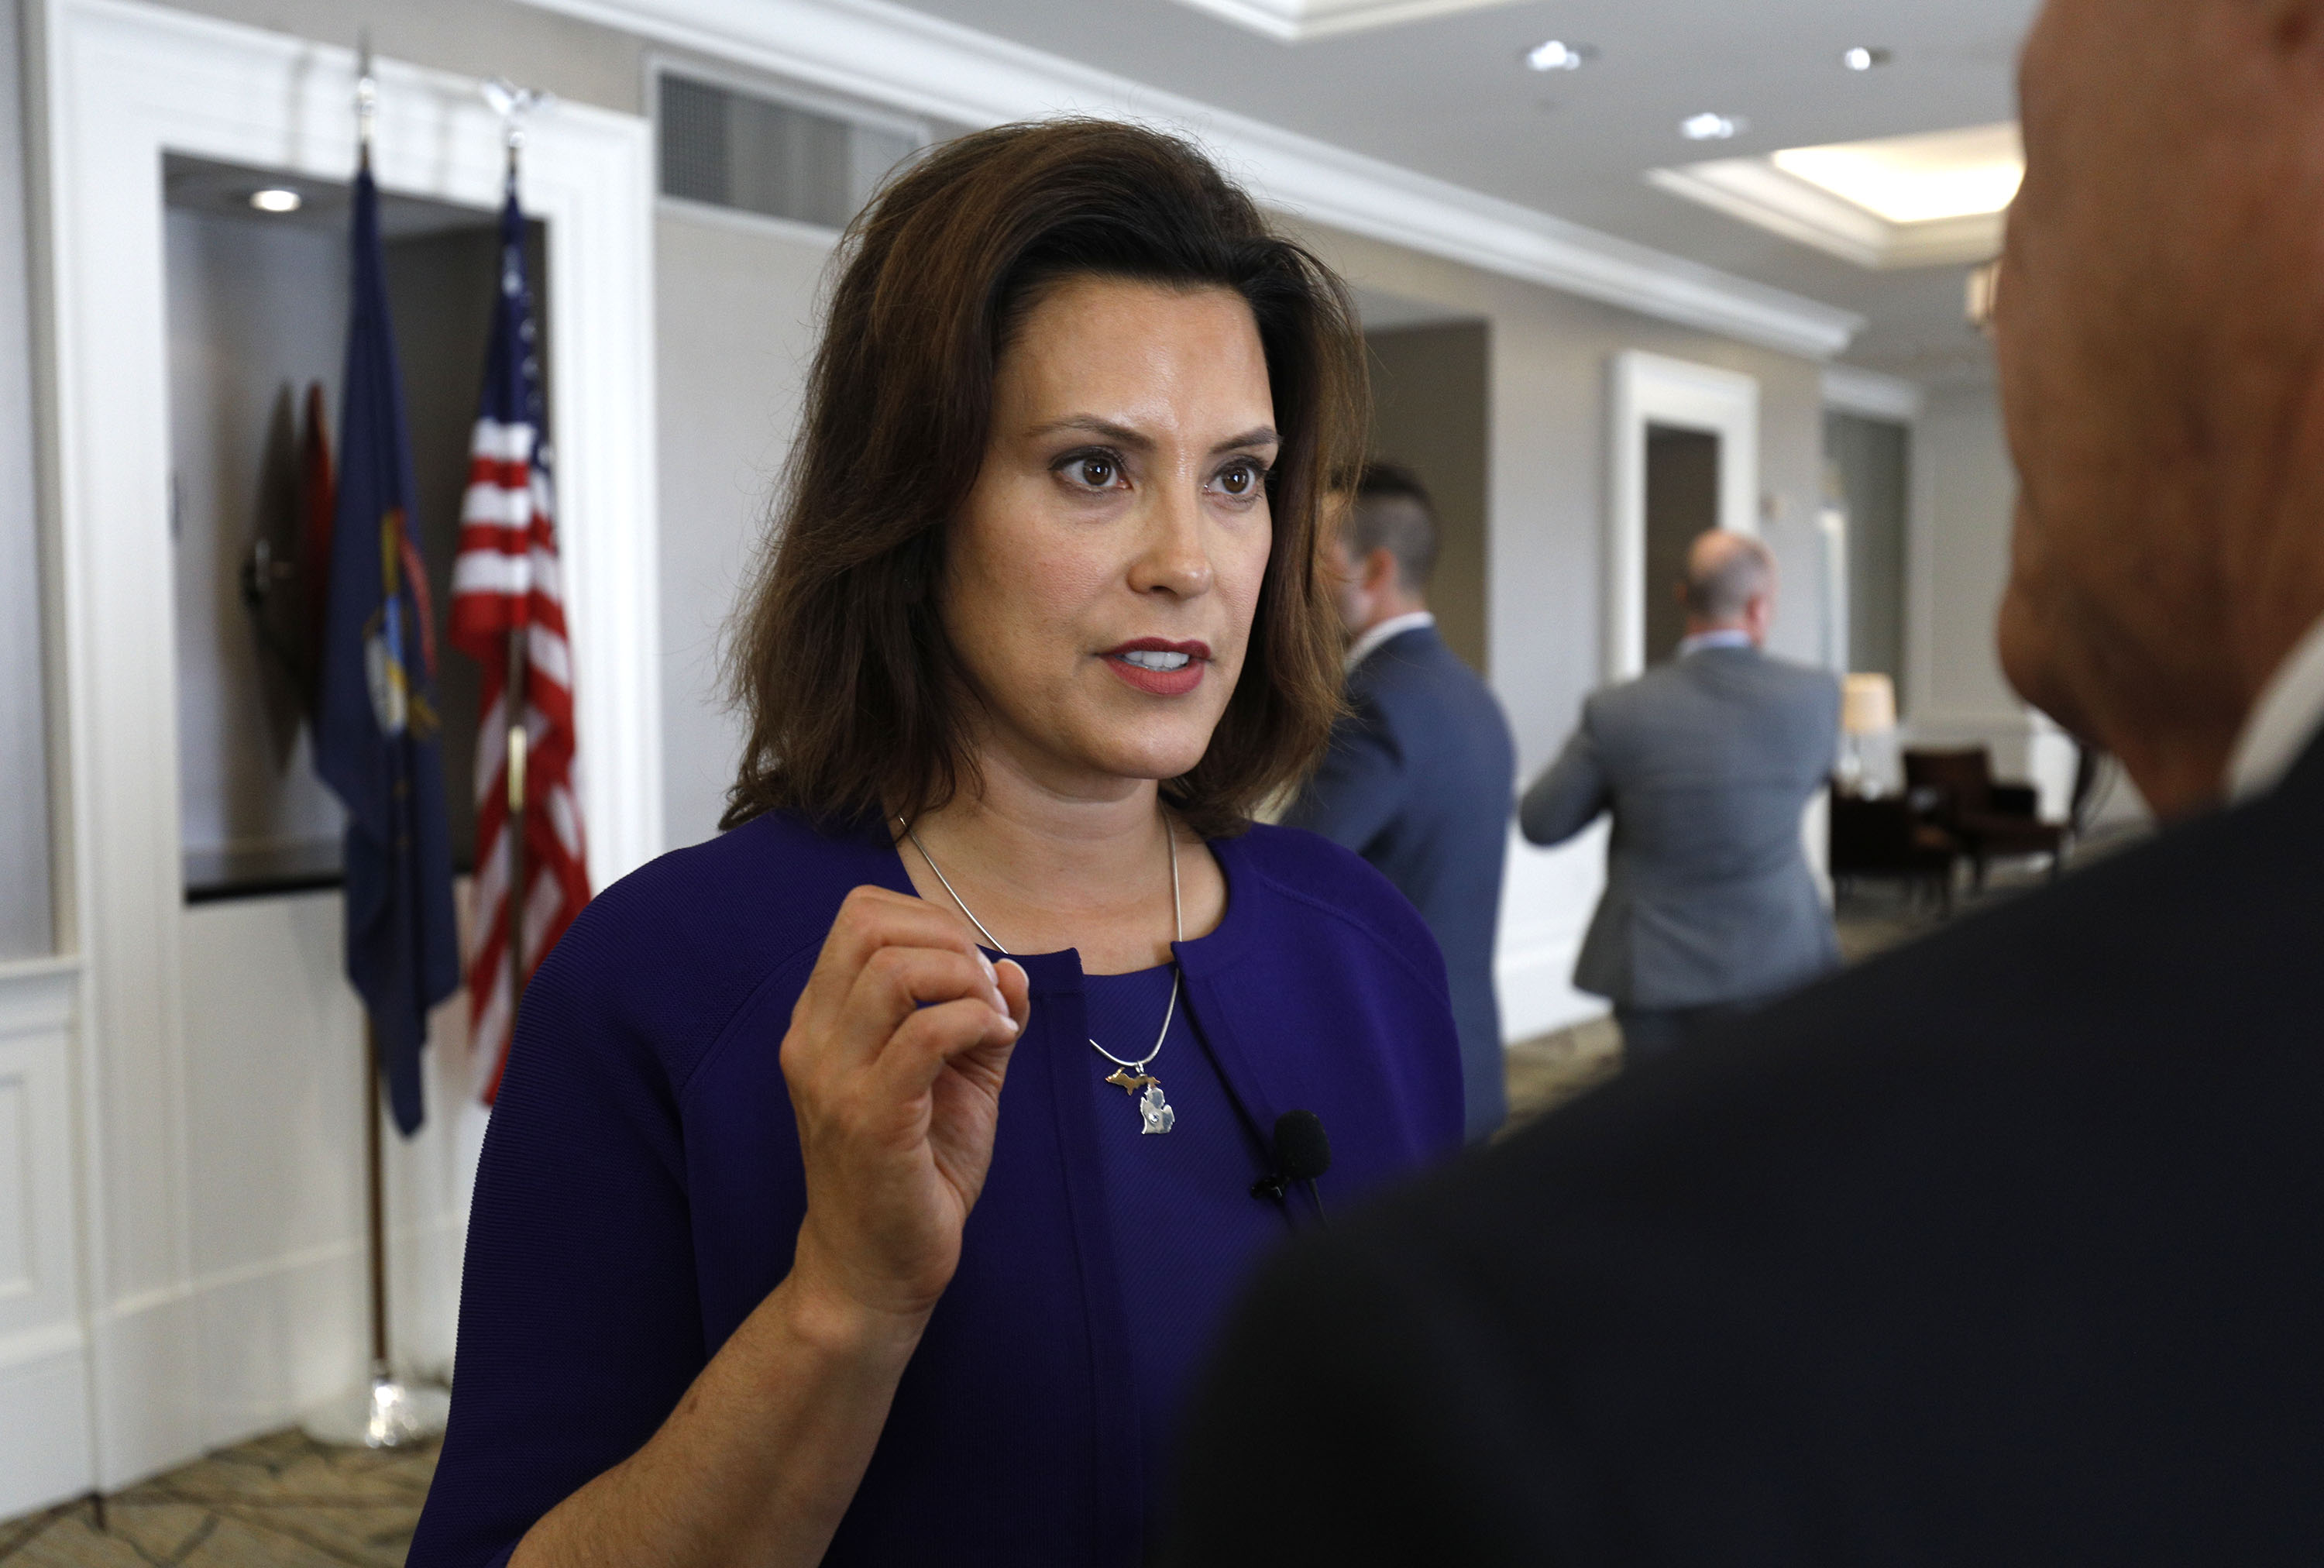 Michigan Governor Gretchen Whitmer speaks to a reporter. She's a white woman with dark brown hair down to her shoulders. She's wearing a blue dress suit and a diamond necklace.